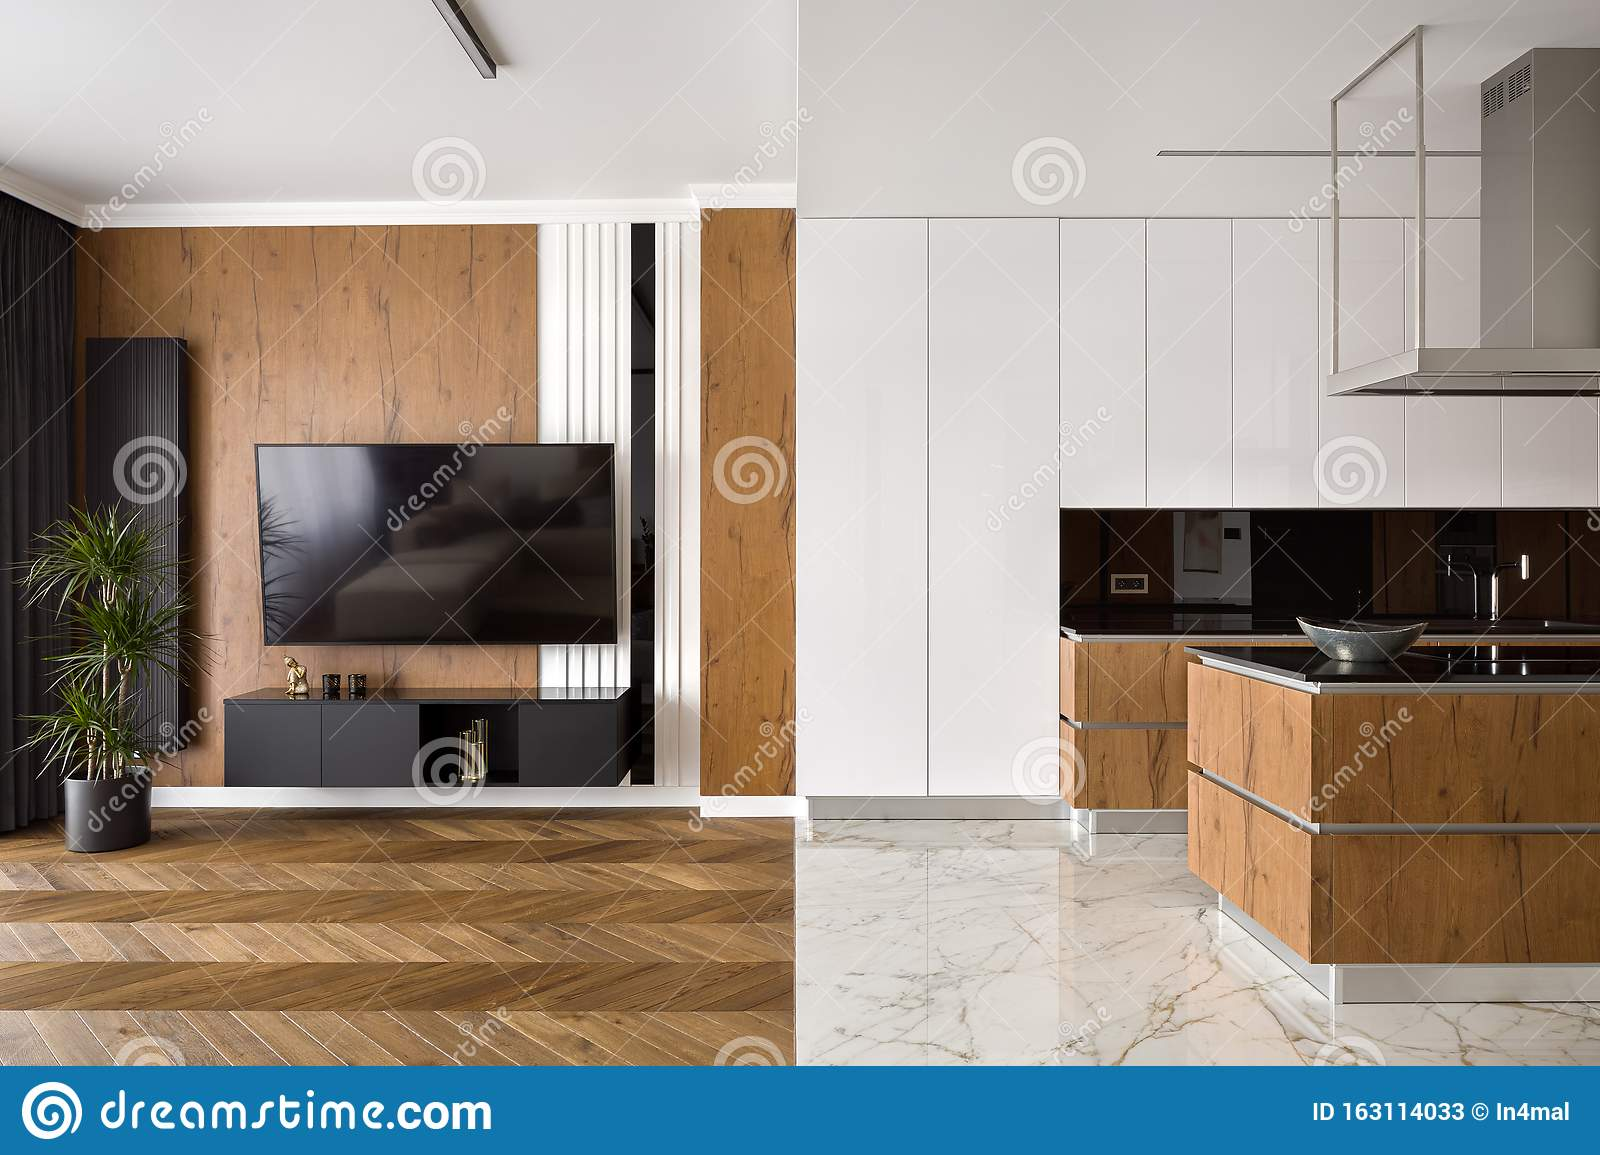 Apartment With Wooden And Marble Floor Stock Image Image Of Decoration Kitchen 163114033